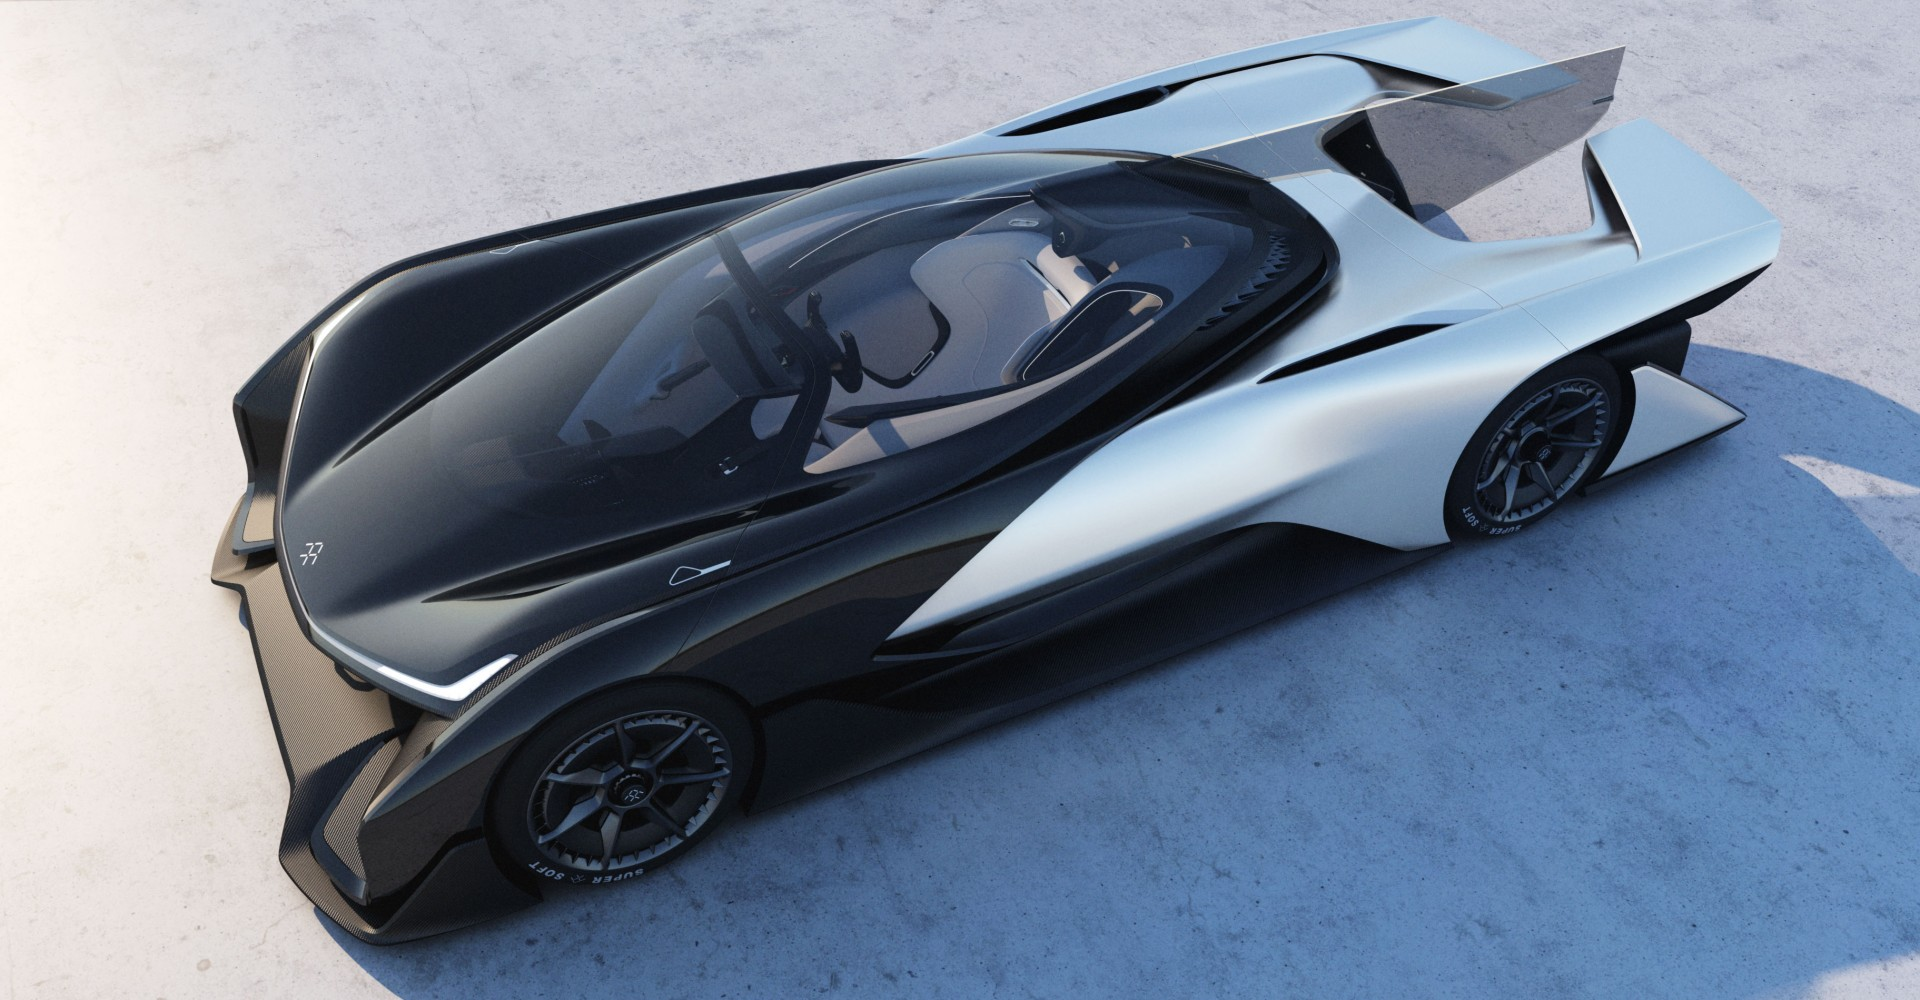 Faraday Future Concept Car Is Unveiled, Looks Totally Space Age